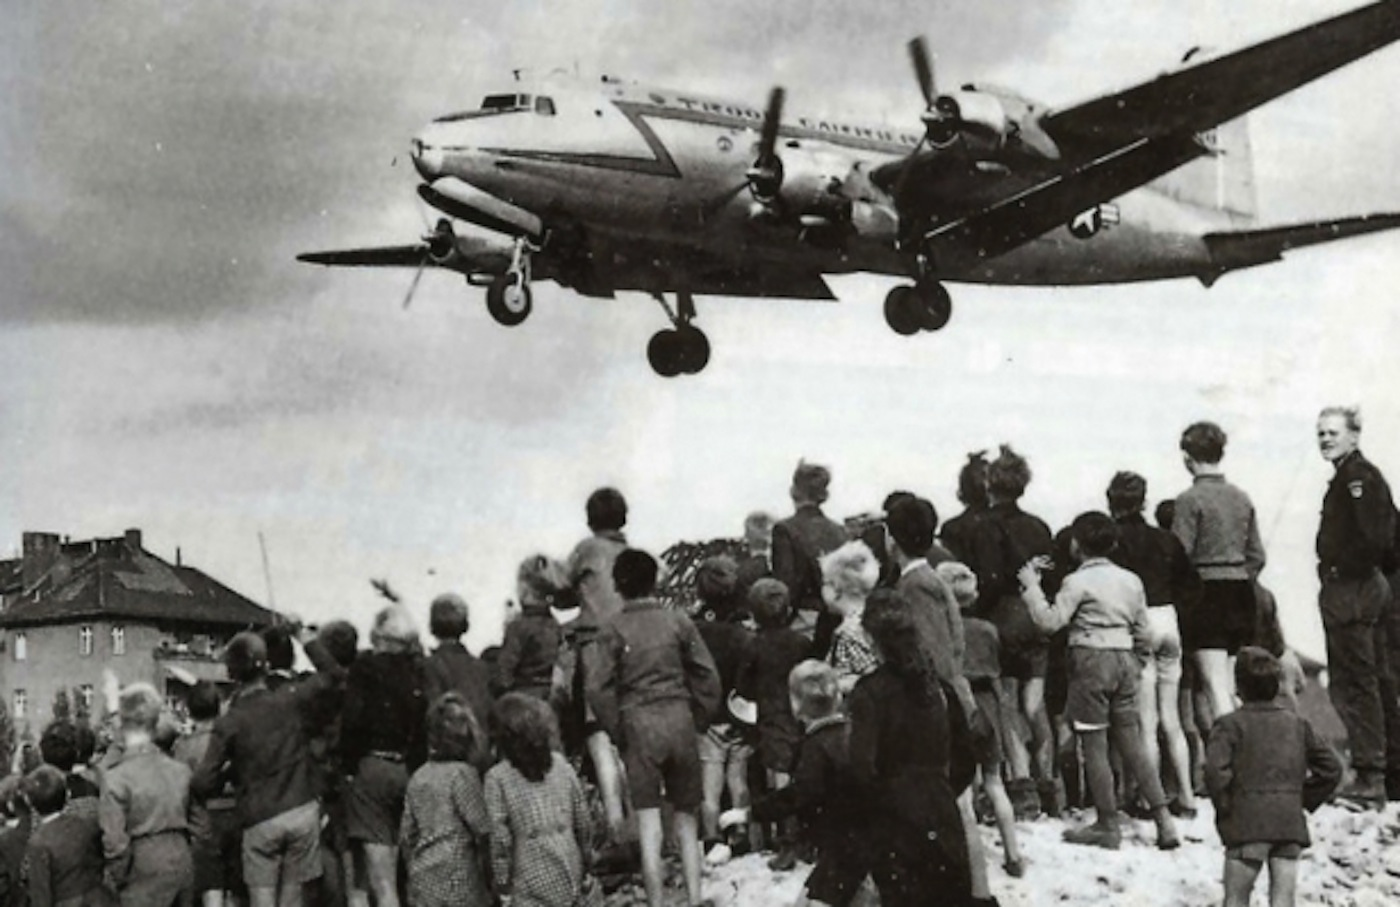 The Berlin Blockade of 1948